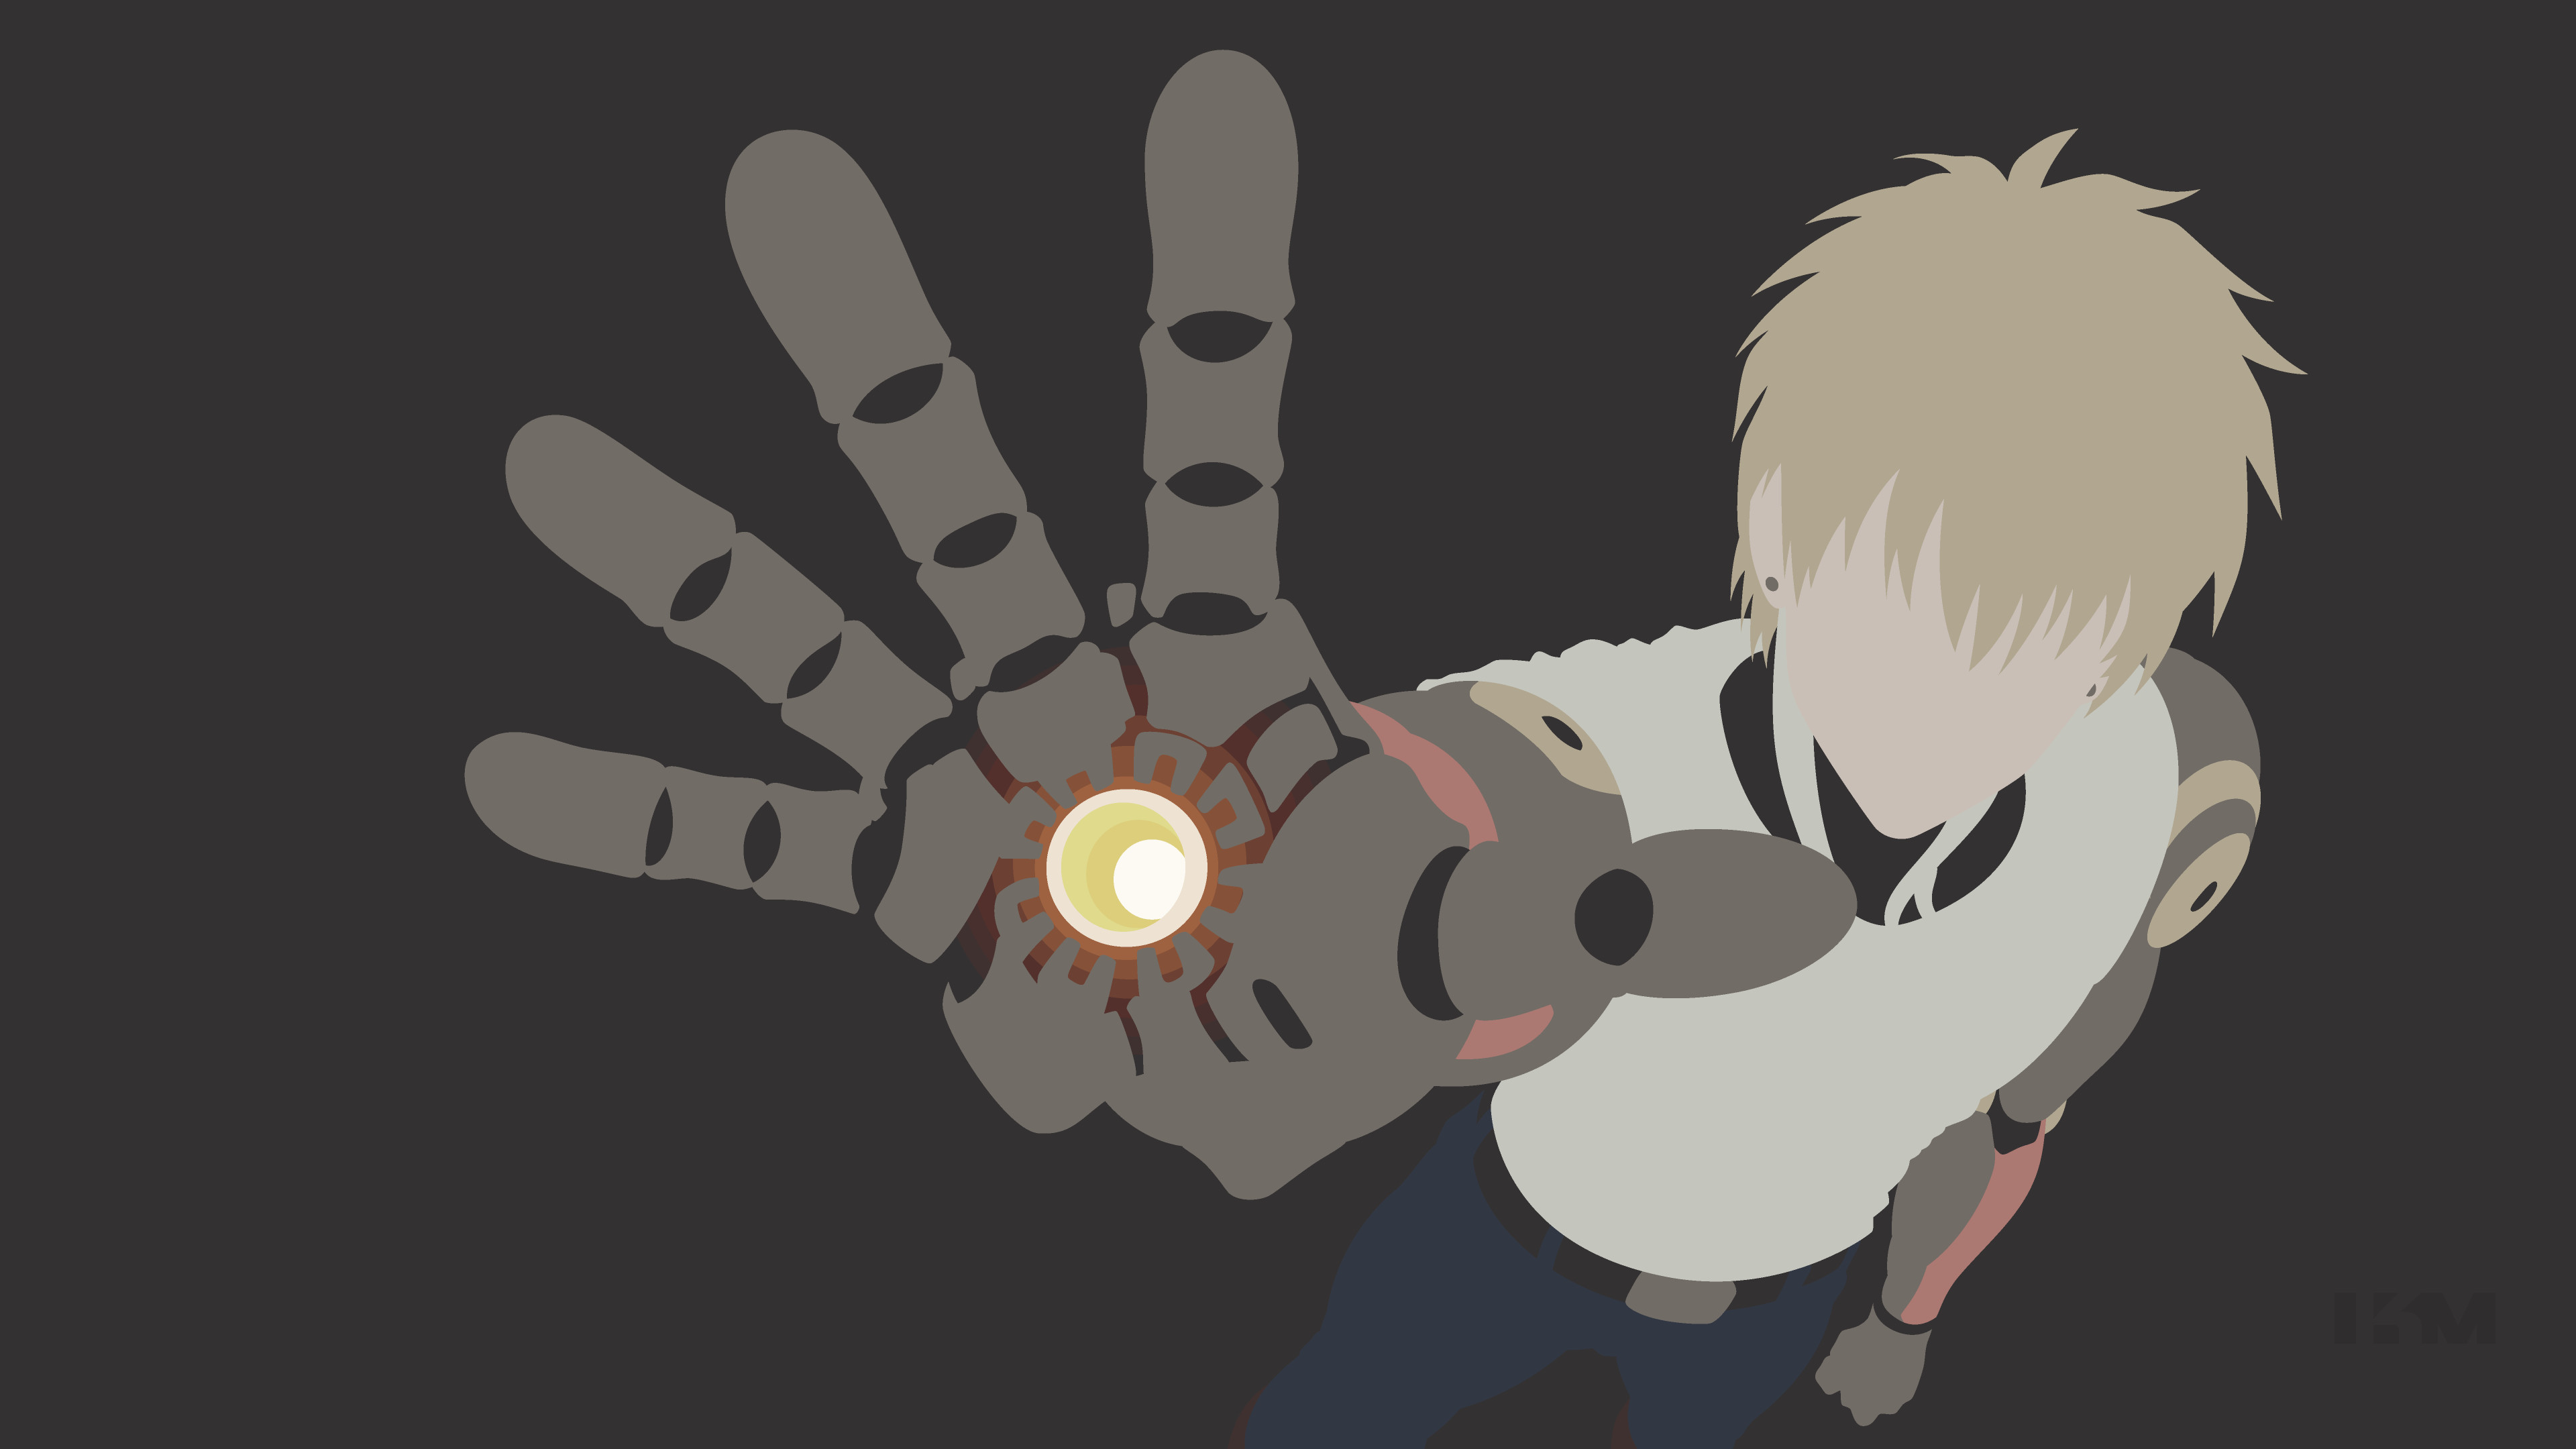 One Punch Man Genos Images 6403 – HD Wallpapers Site